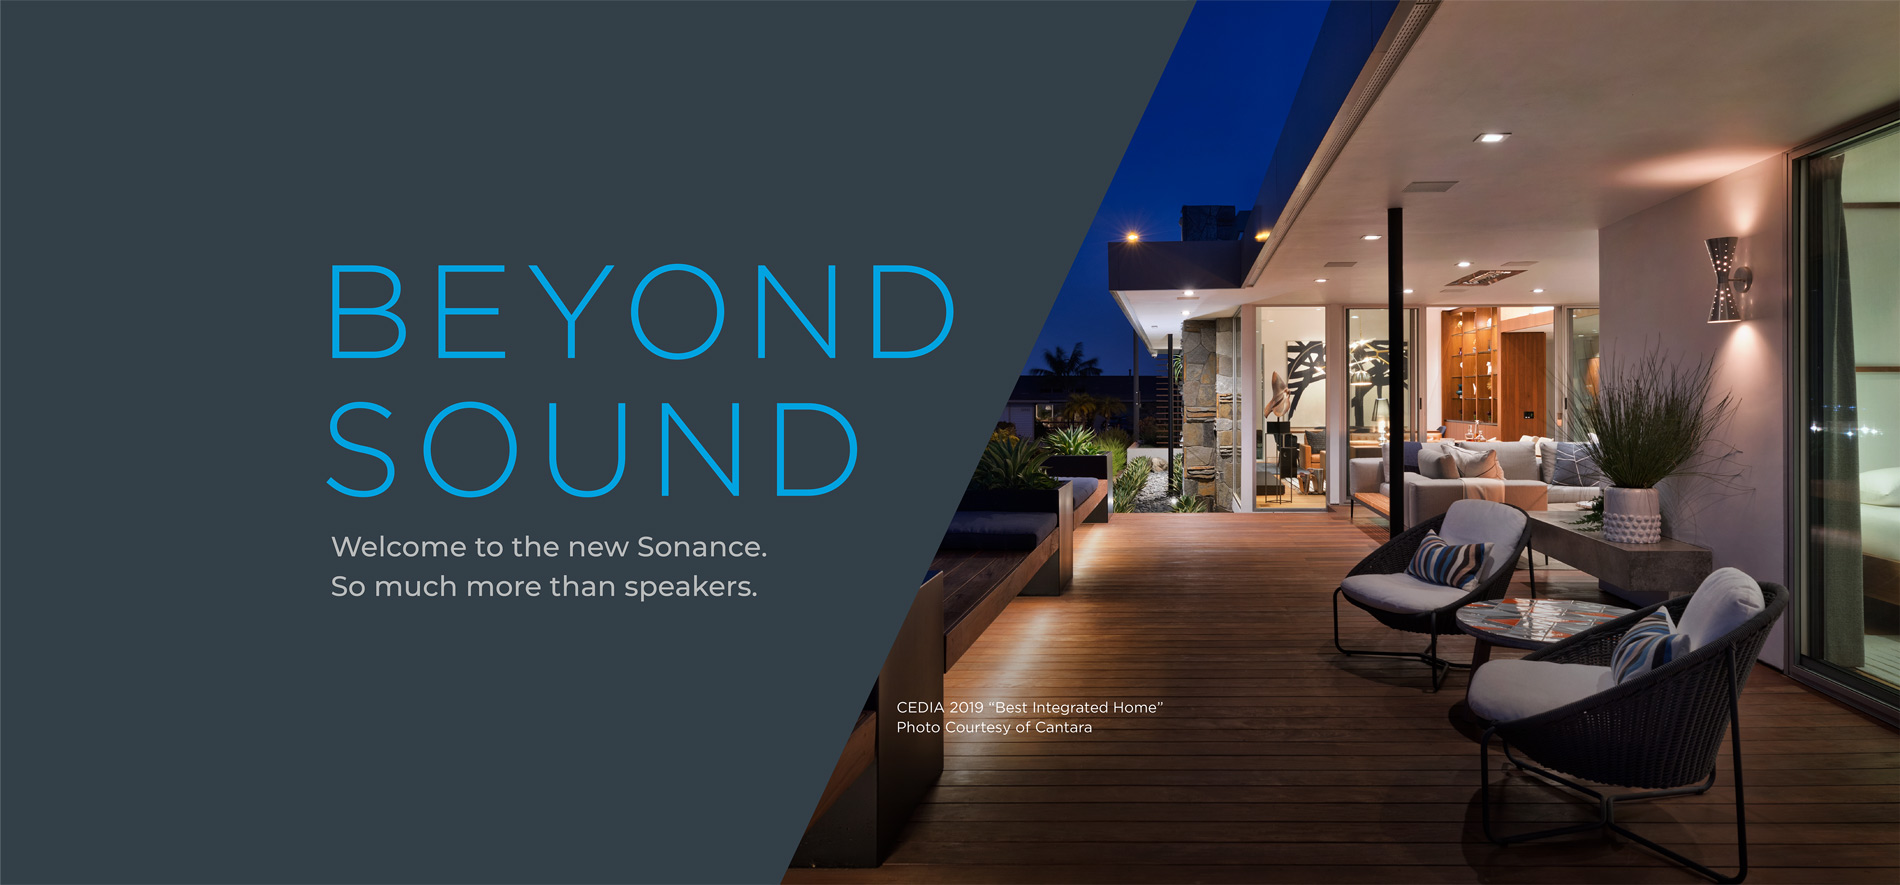 Sonance-BeyondSound-Home